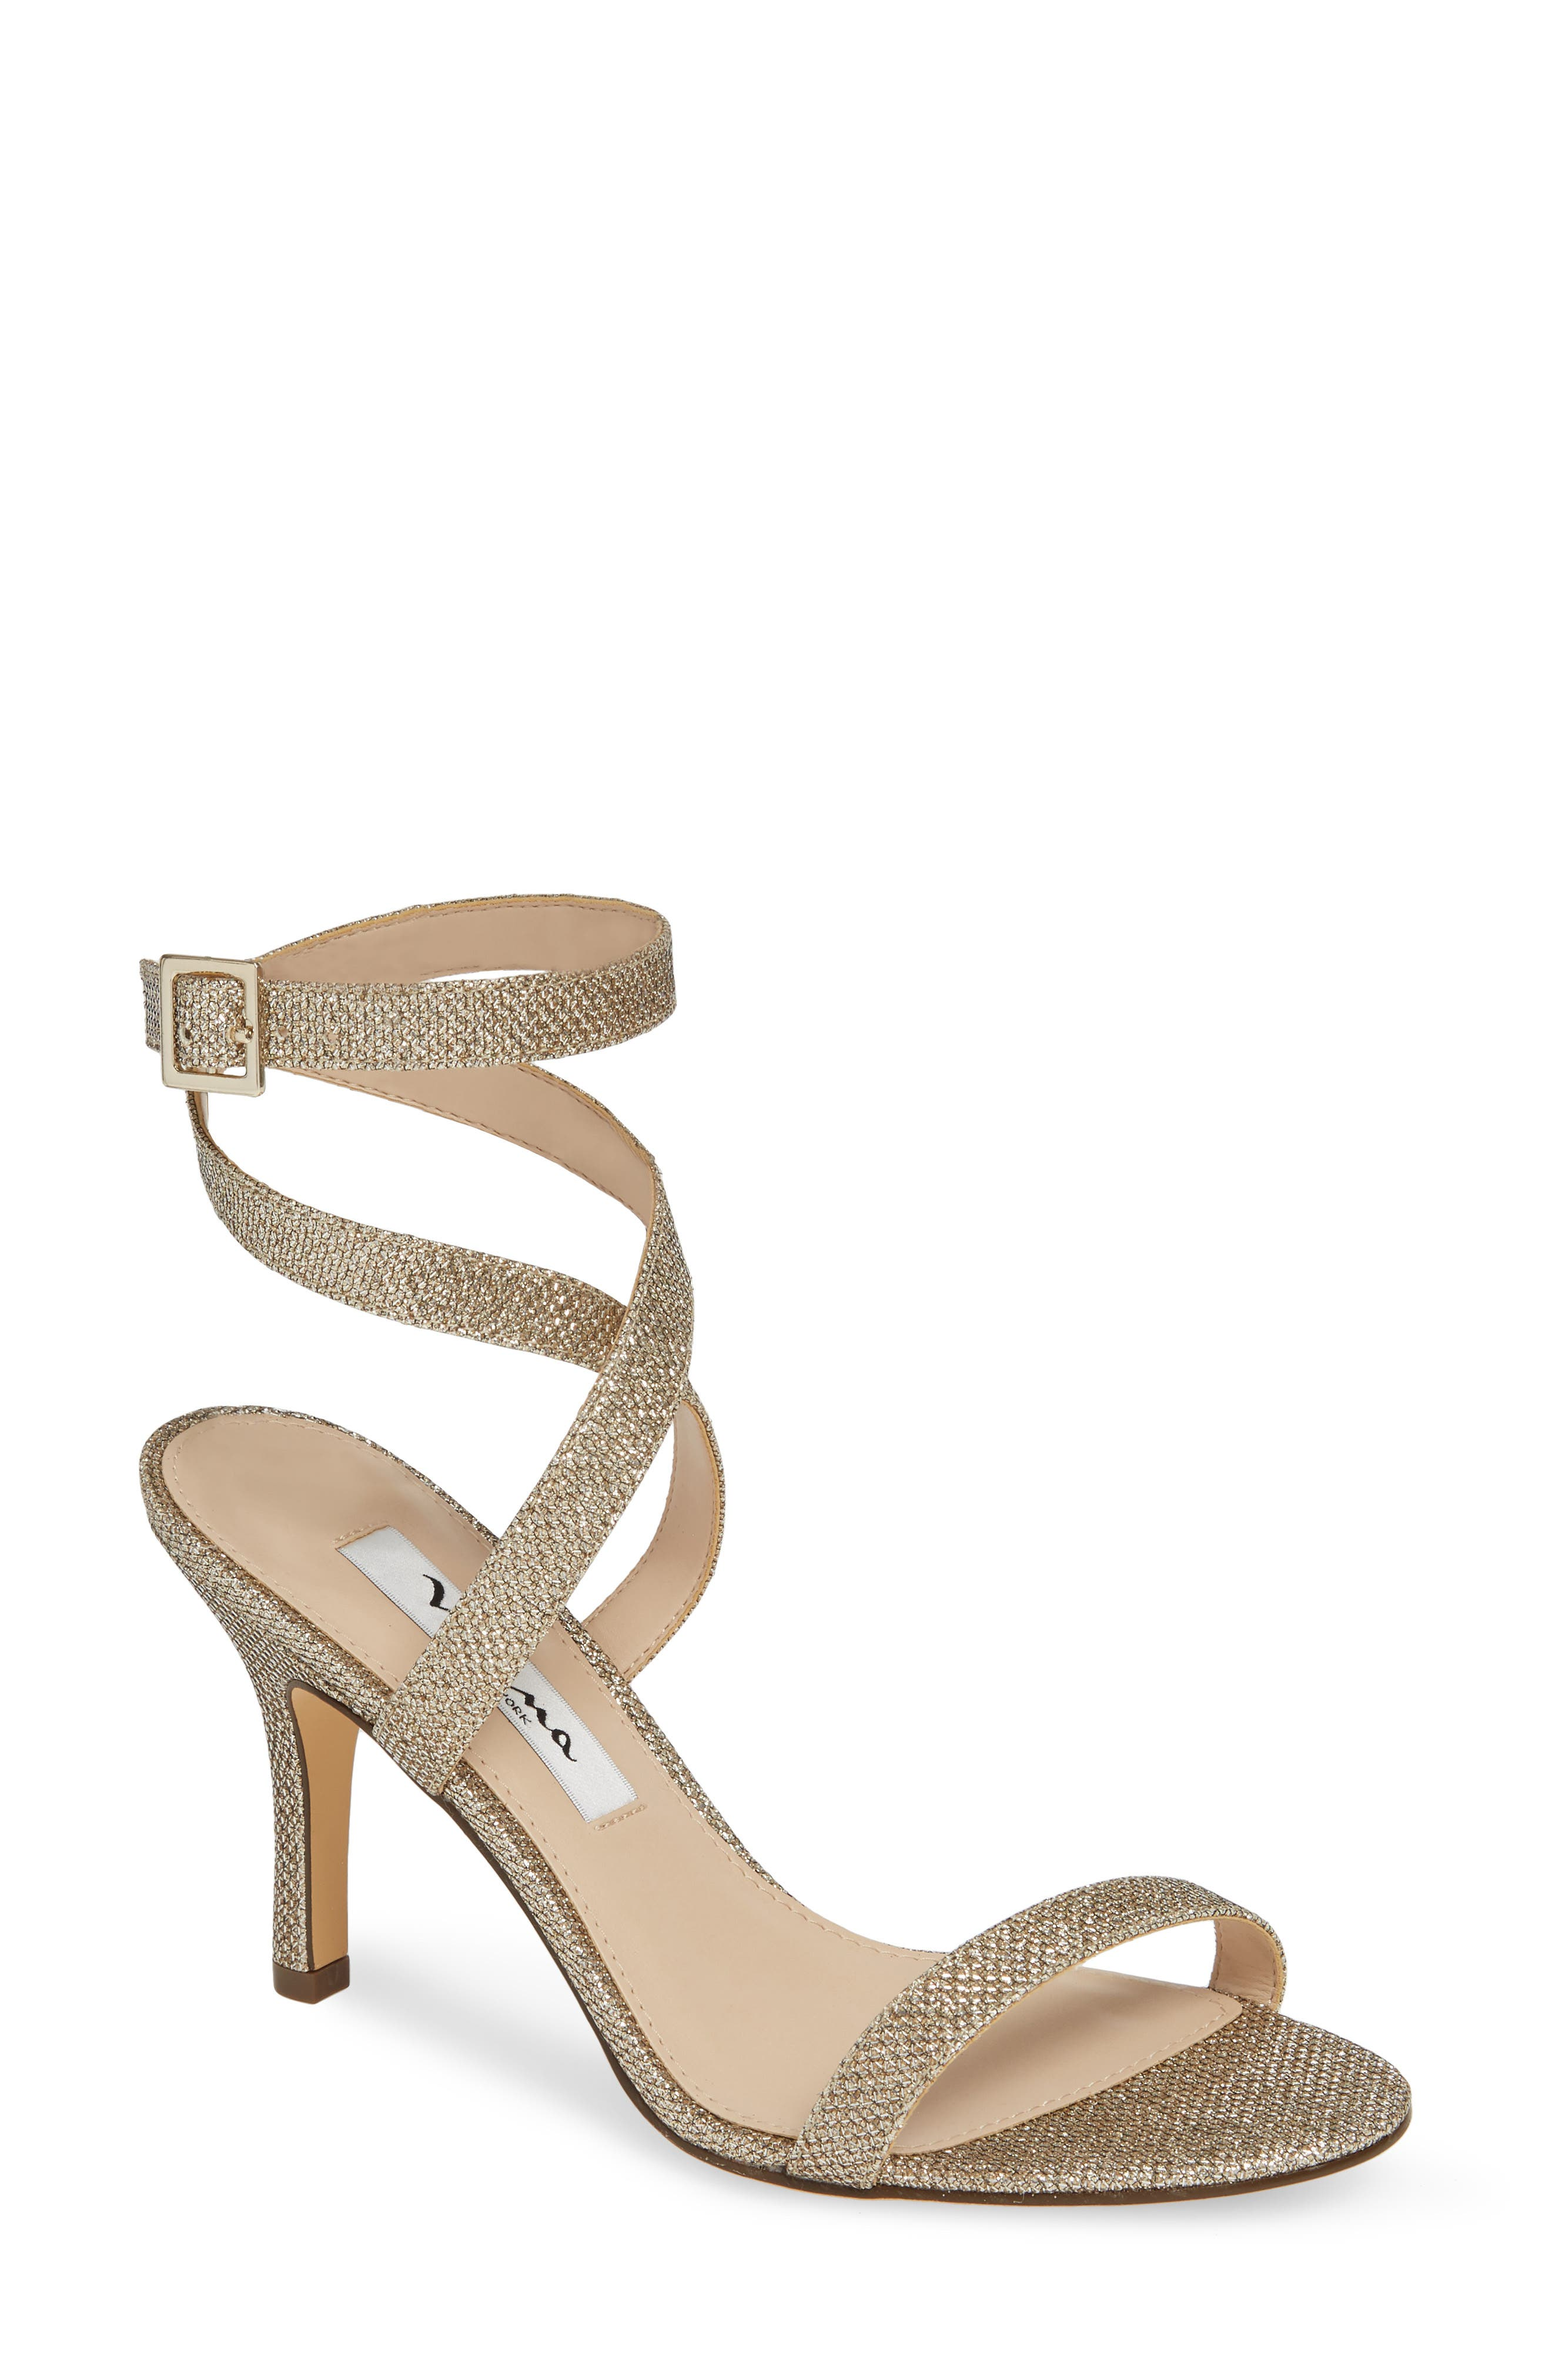 Vanna Ankle Strap Sandal, Main, color, LIGHT GOLD FABRIC